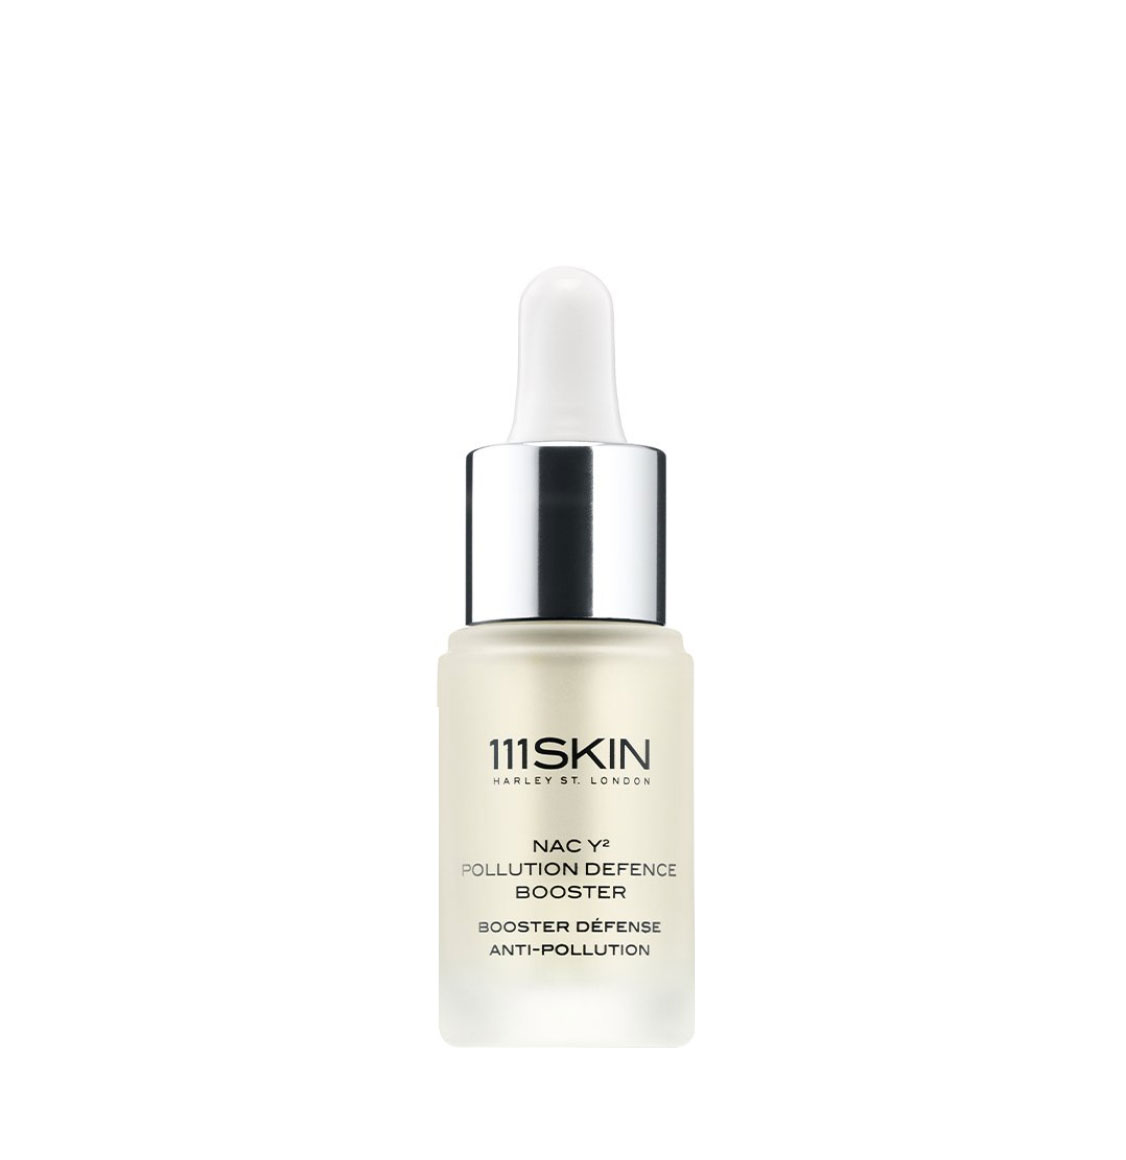 111Skin NAC Y2 Pollution Defence Booster 20ml